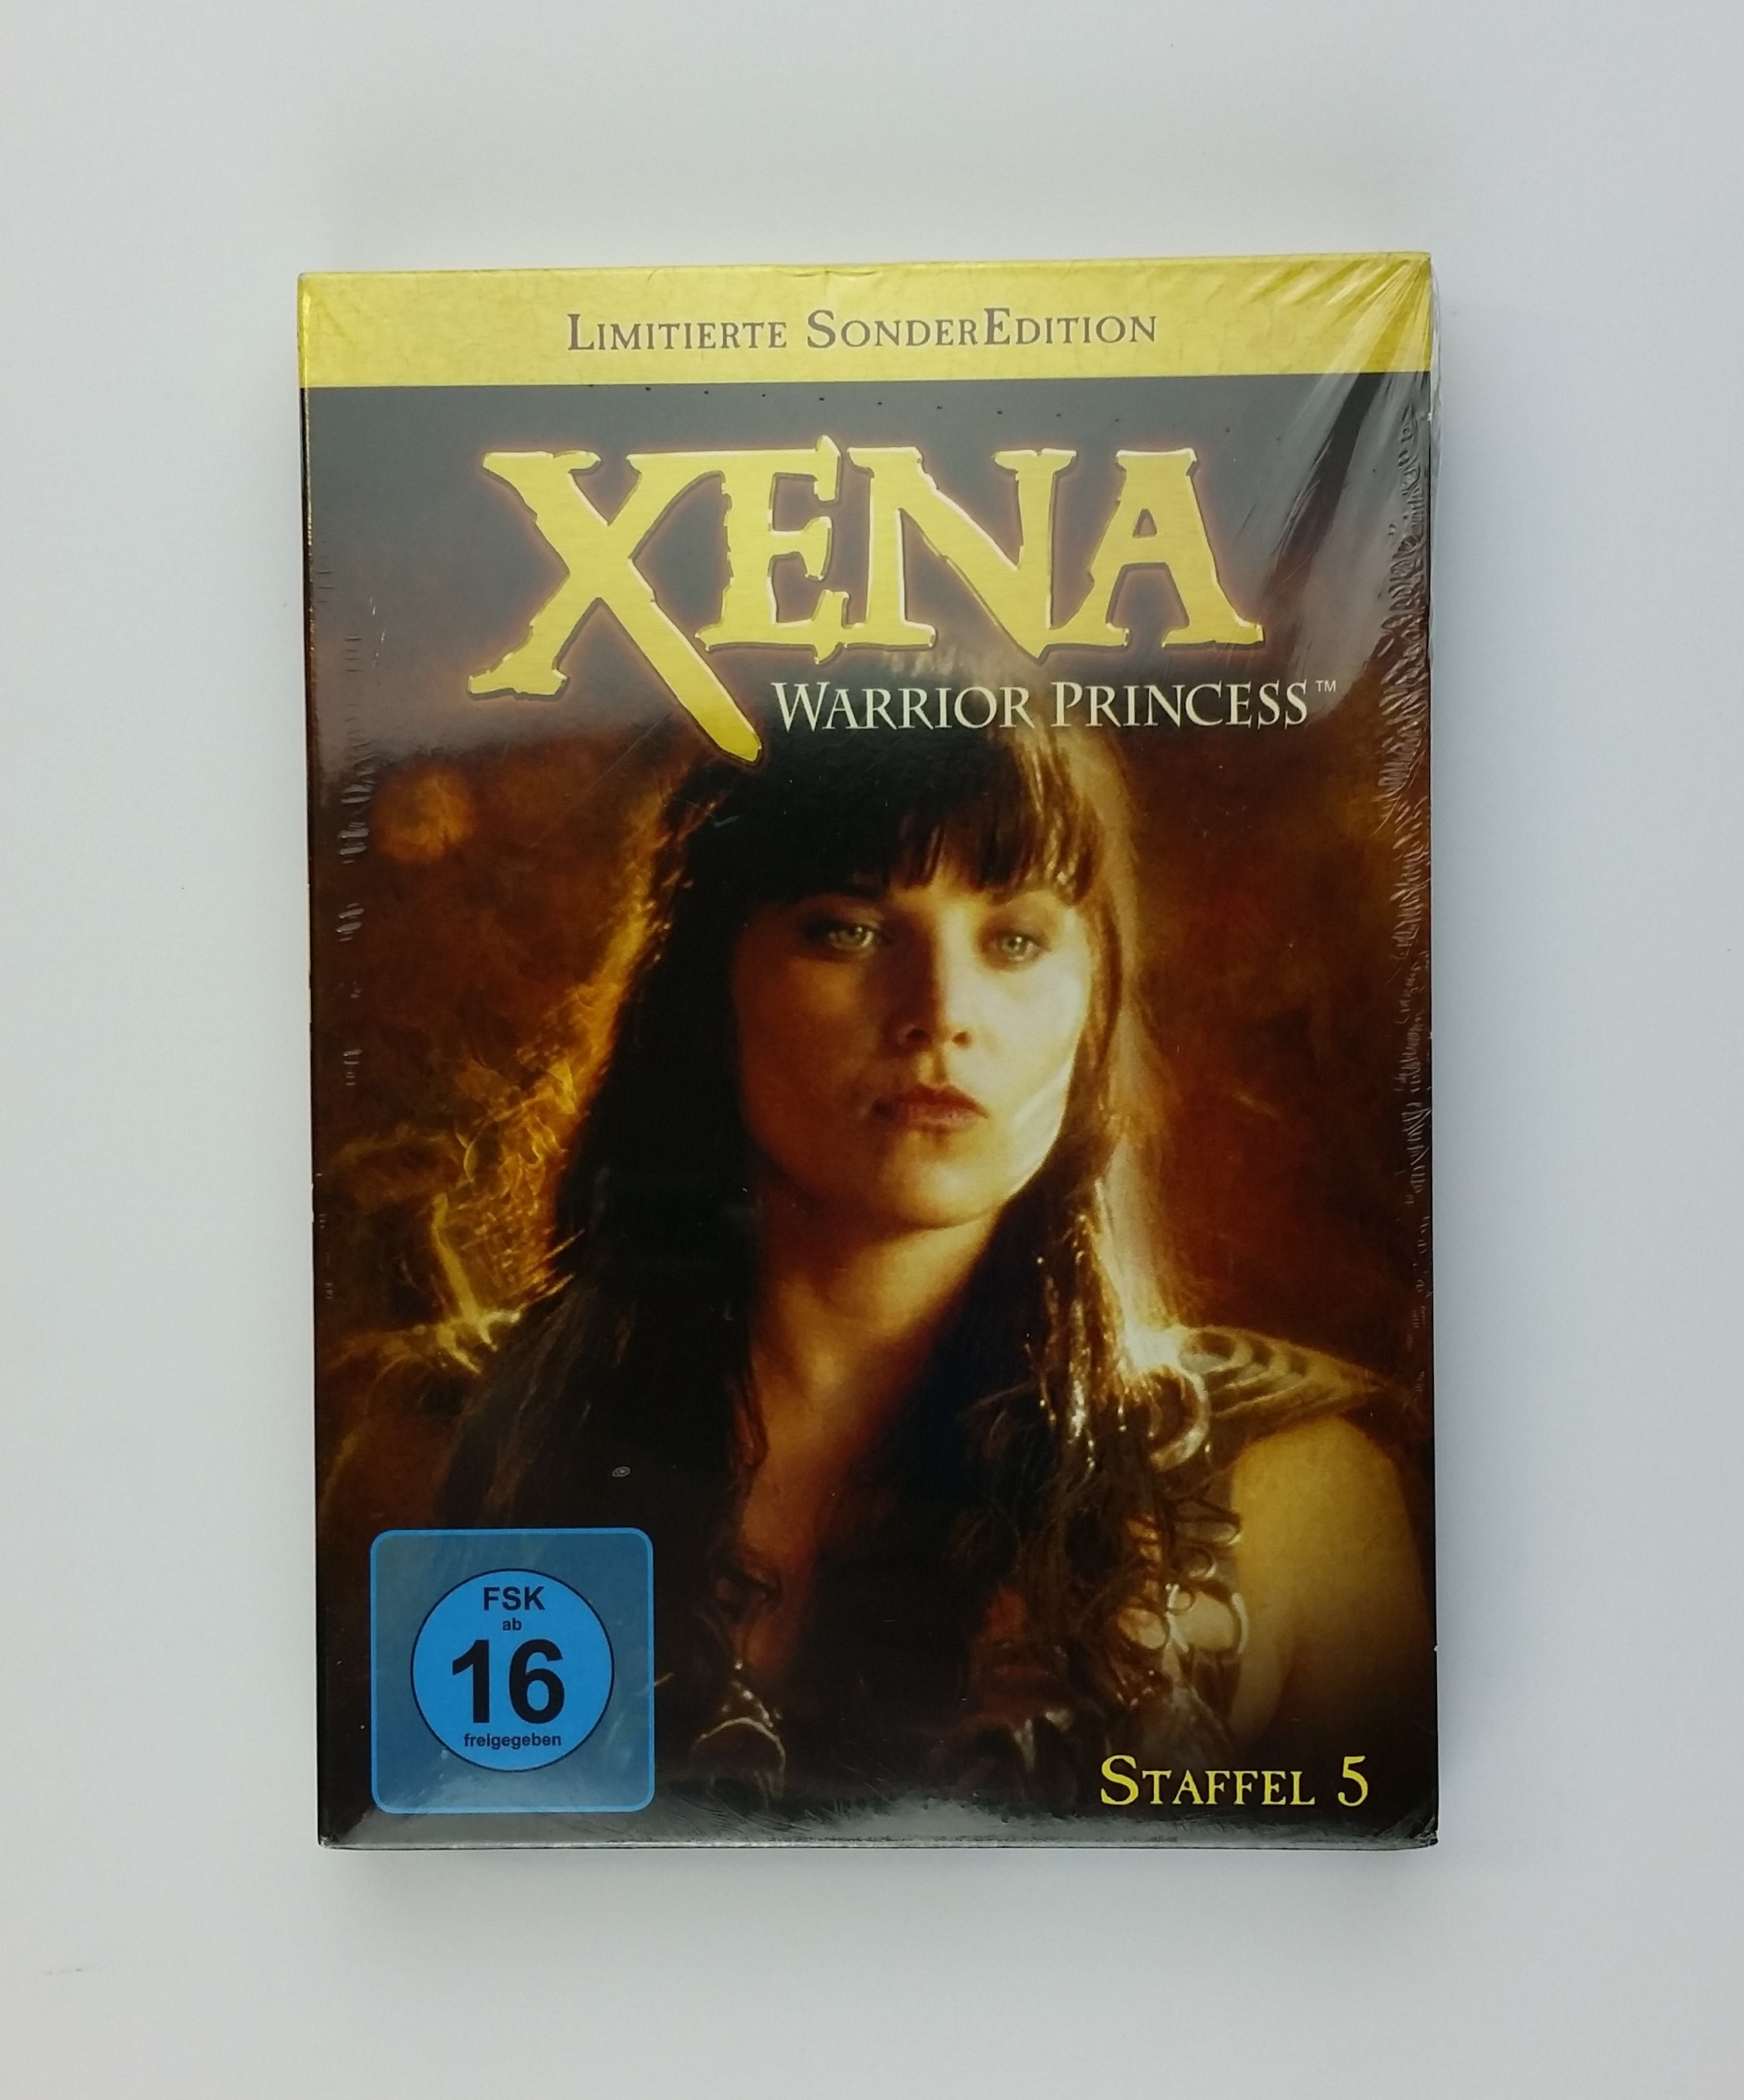 Xena - Staffel 5 Limited Edition